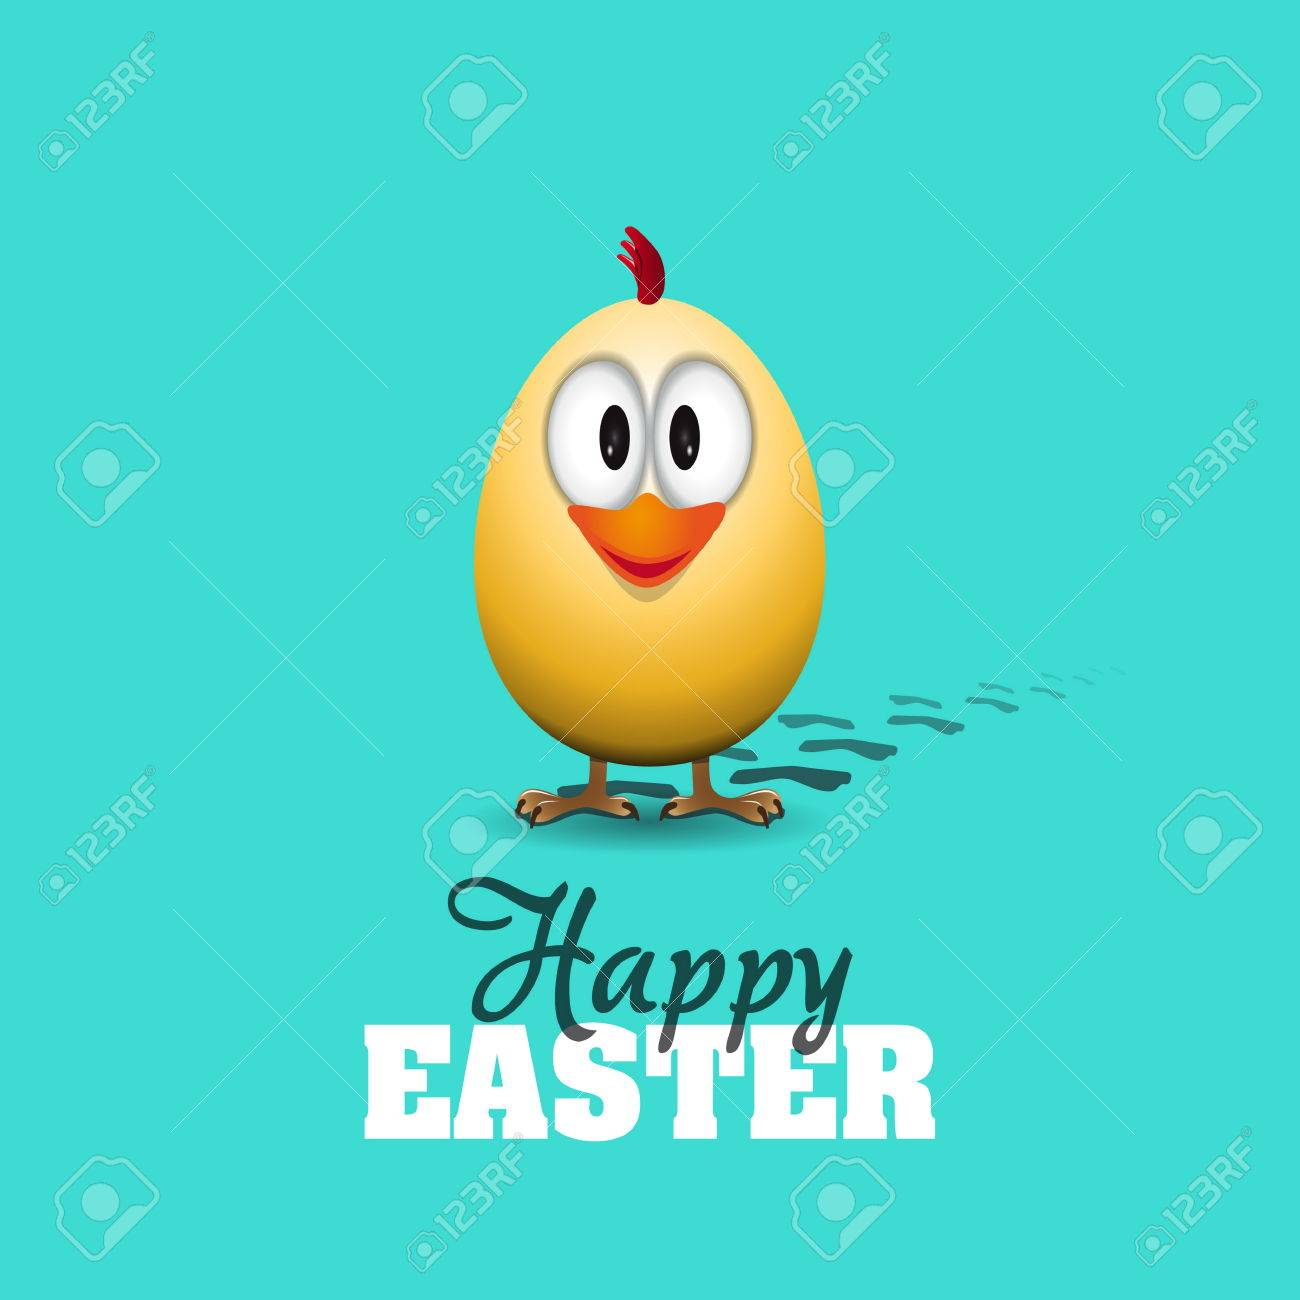 Funny easter egg chick background illustration happy easter funny easter egg chick background illustration happy easter card stock vector 25740464 kristyandbryce Choice Image